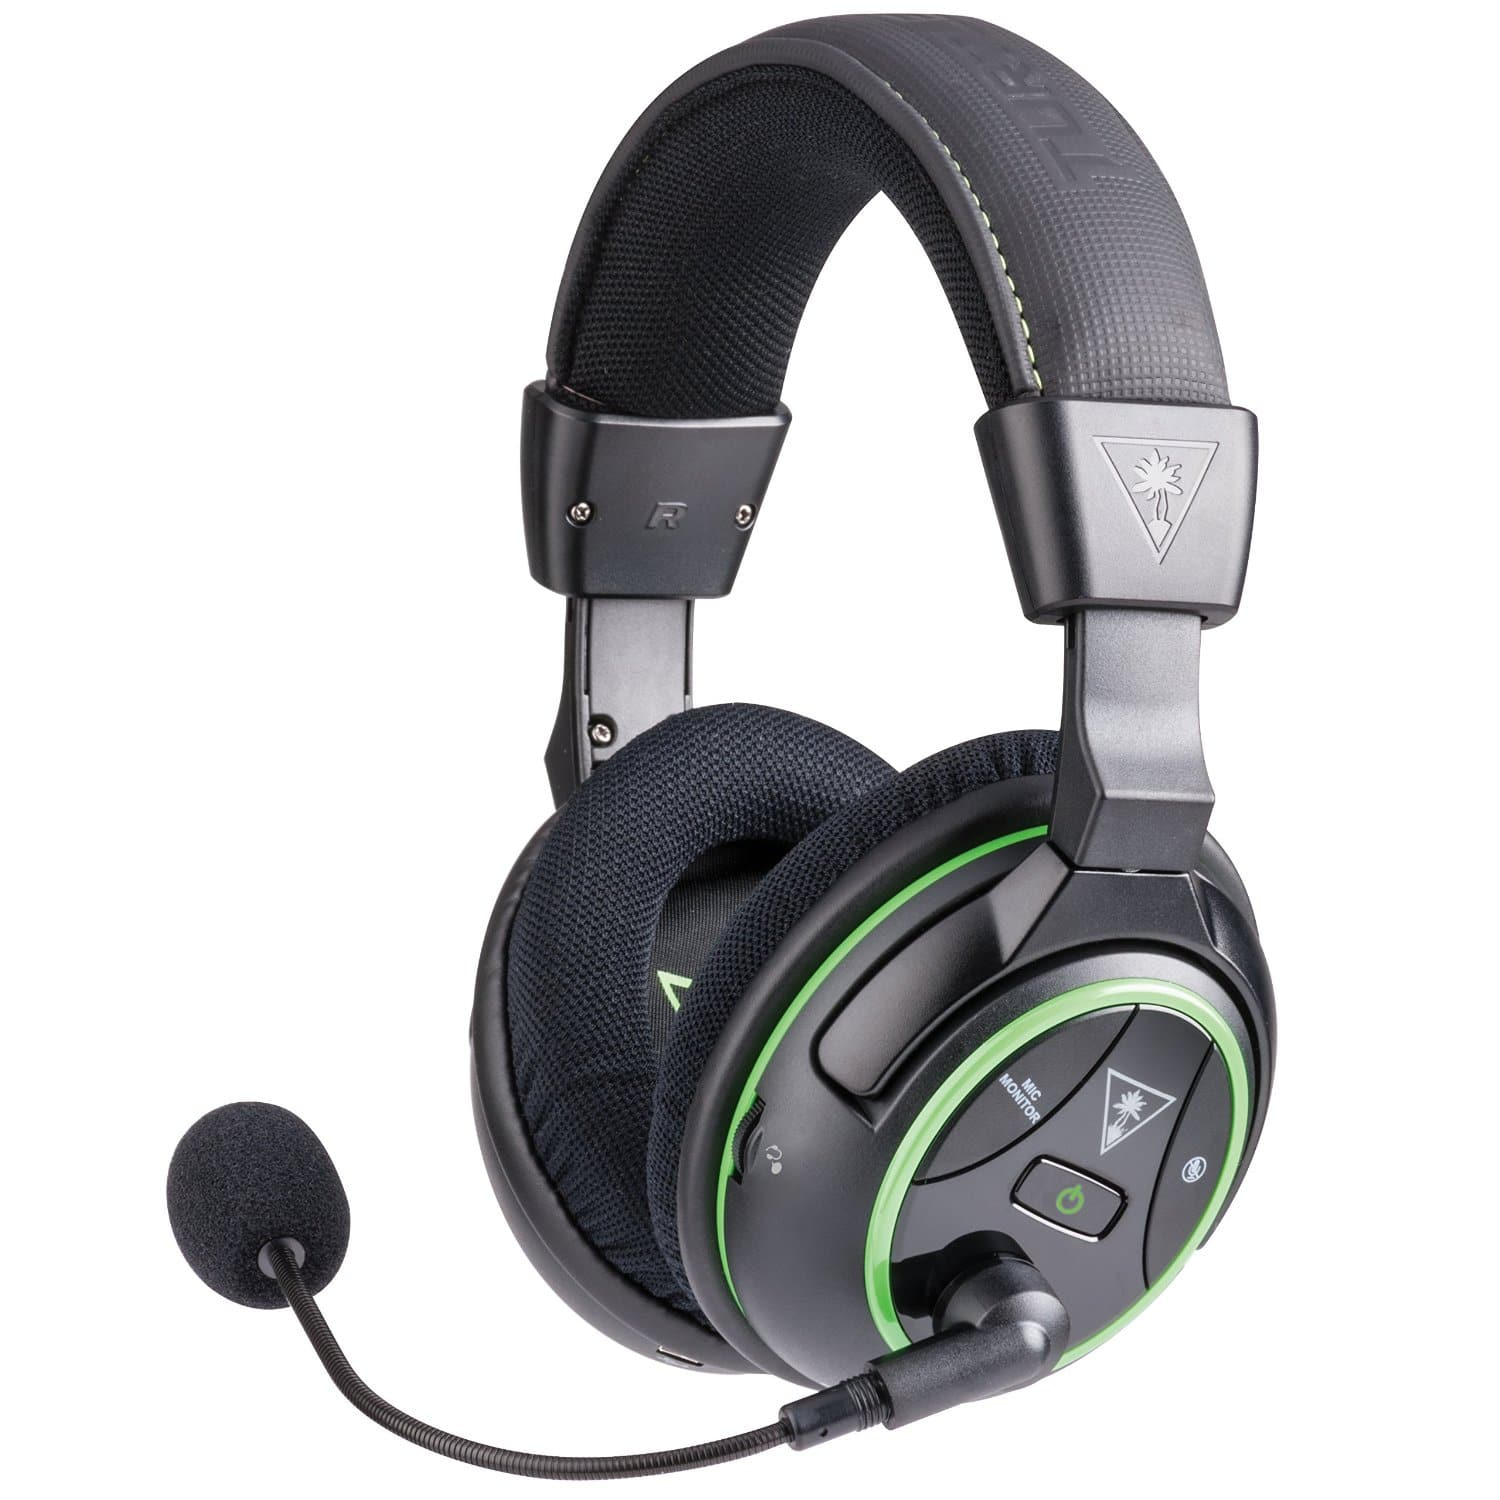 Turtle Beach Ear Force Stealth 500X Wireless DTS 7.1 Surround Sound Headset for Xbox One  $150 + Free Shipping